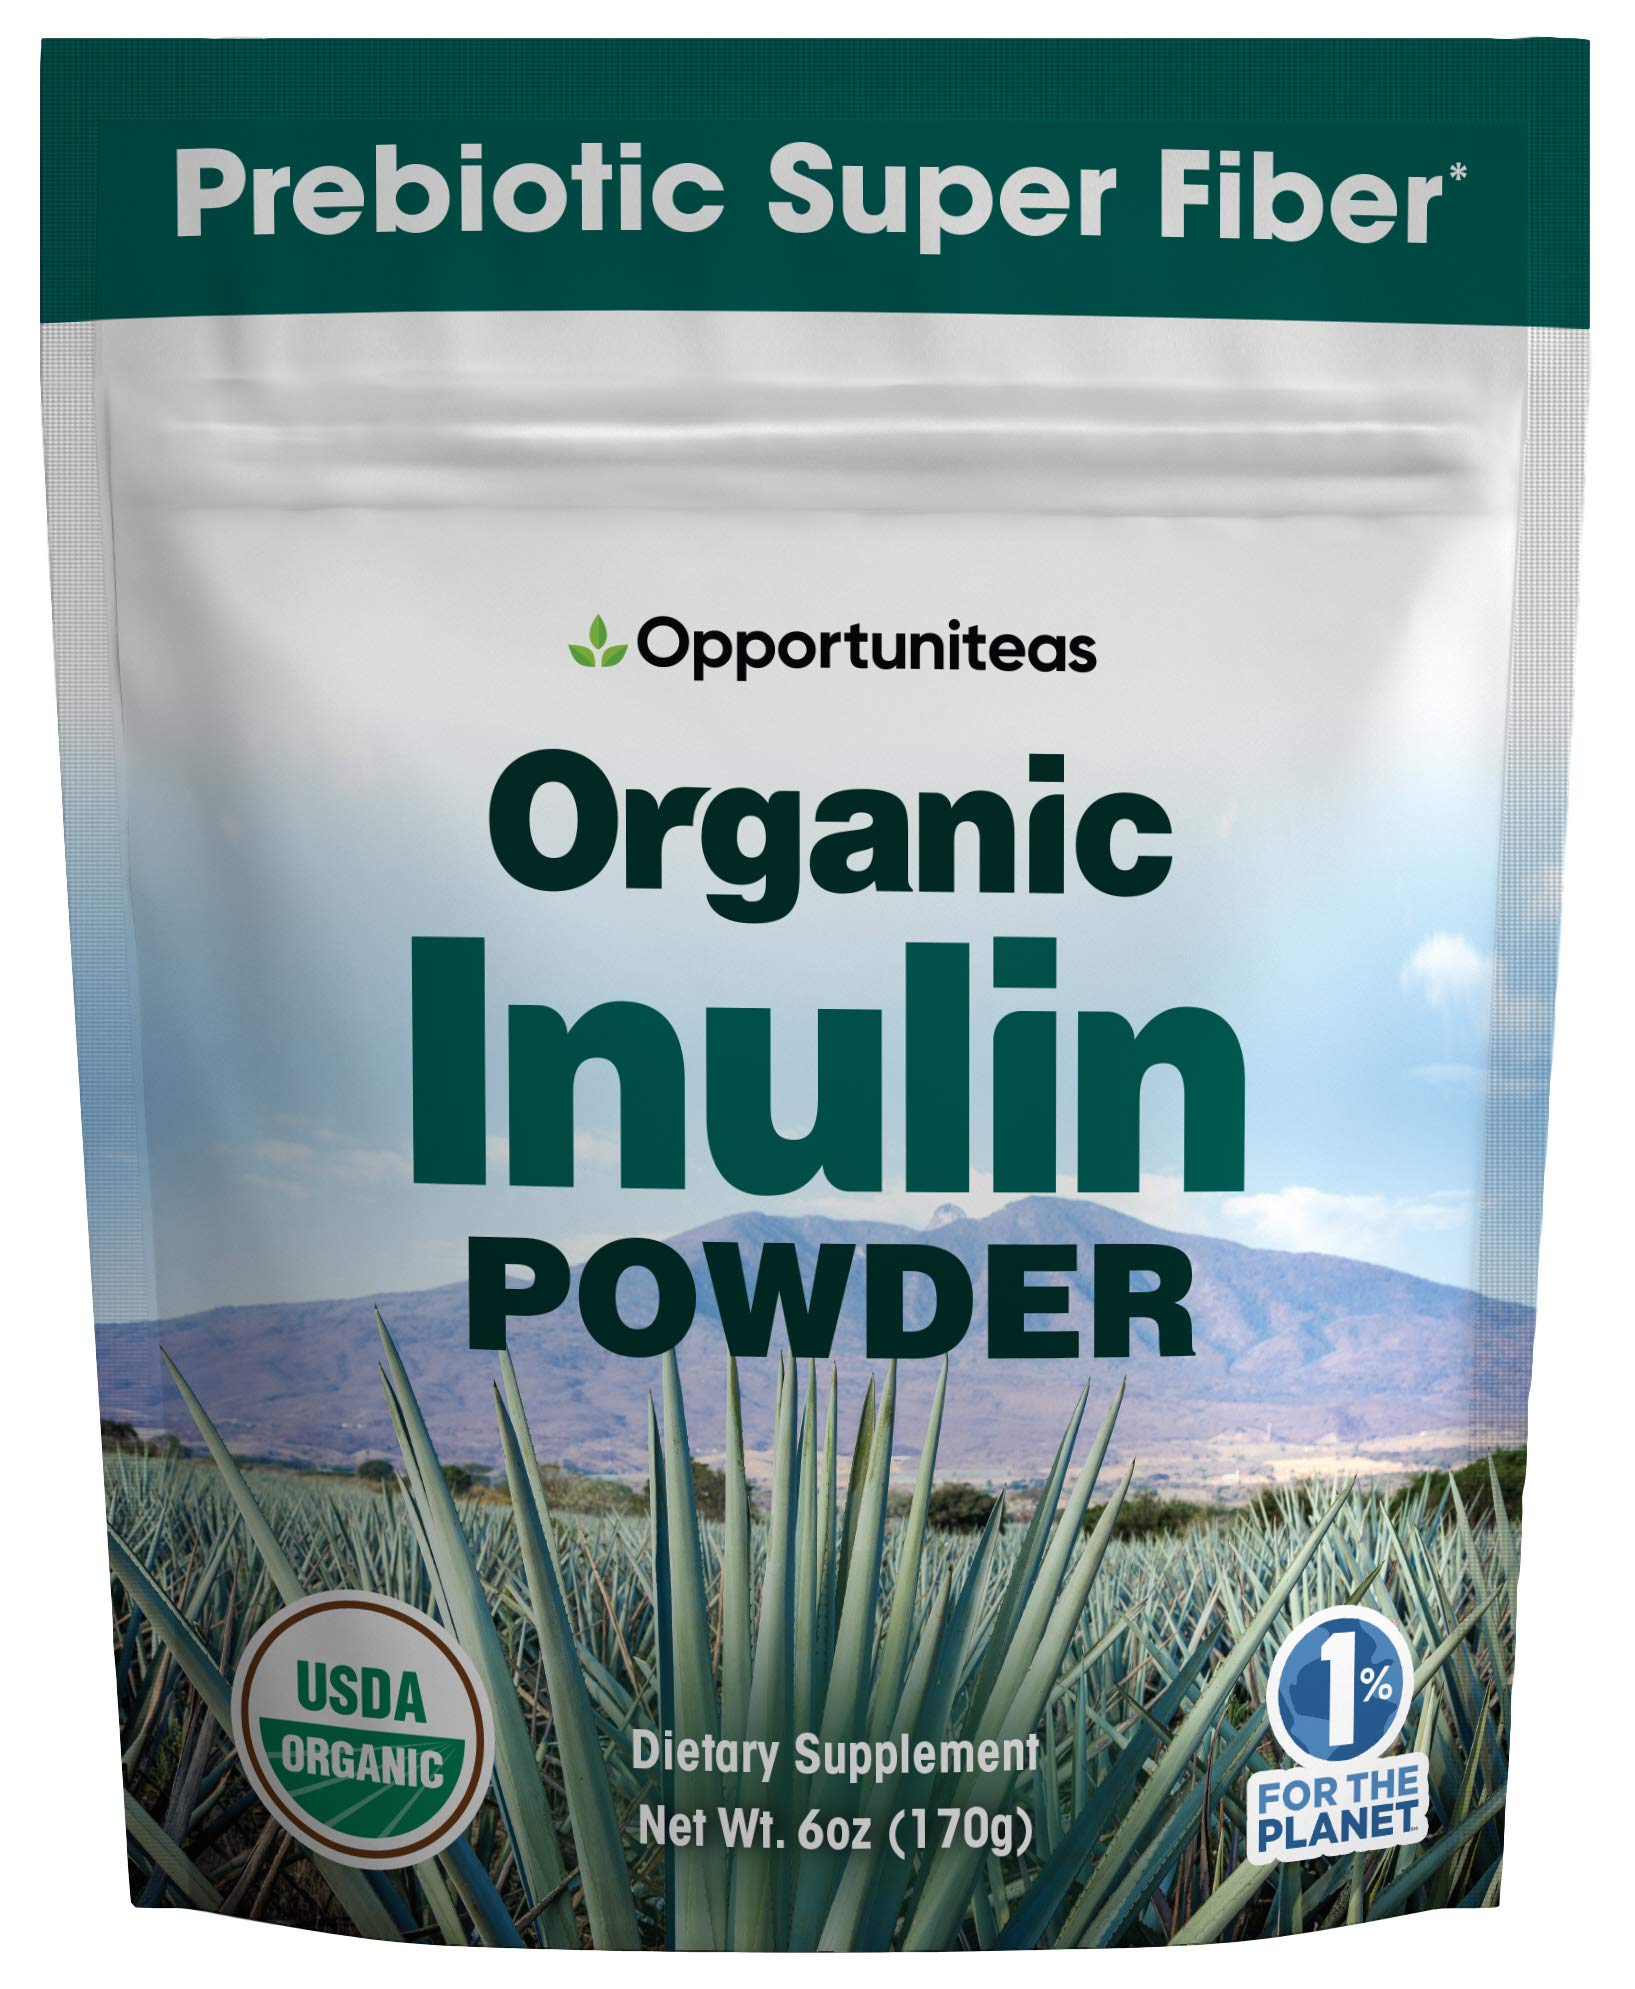 Organic Inulin Powder - Prebiotic Super Fiber Made from 100% Organic Blue Weber Agave - Alternative Sweetener That Supports Digestion, Regularity, and Gut - Non GMO, Vegan, Gluten Free - 6 oz by Opportuniteas